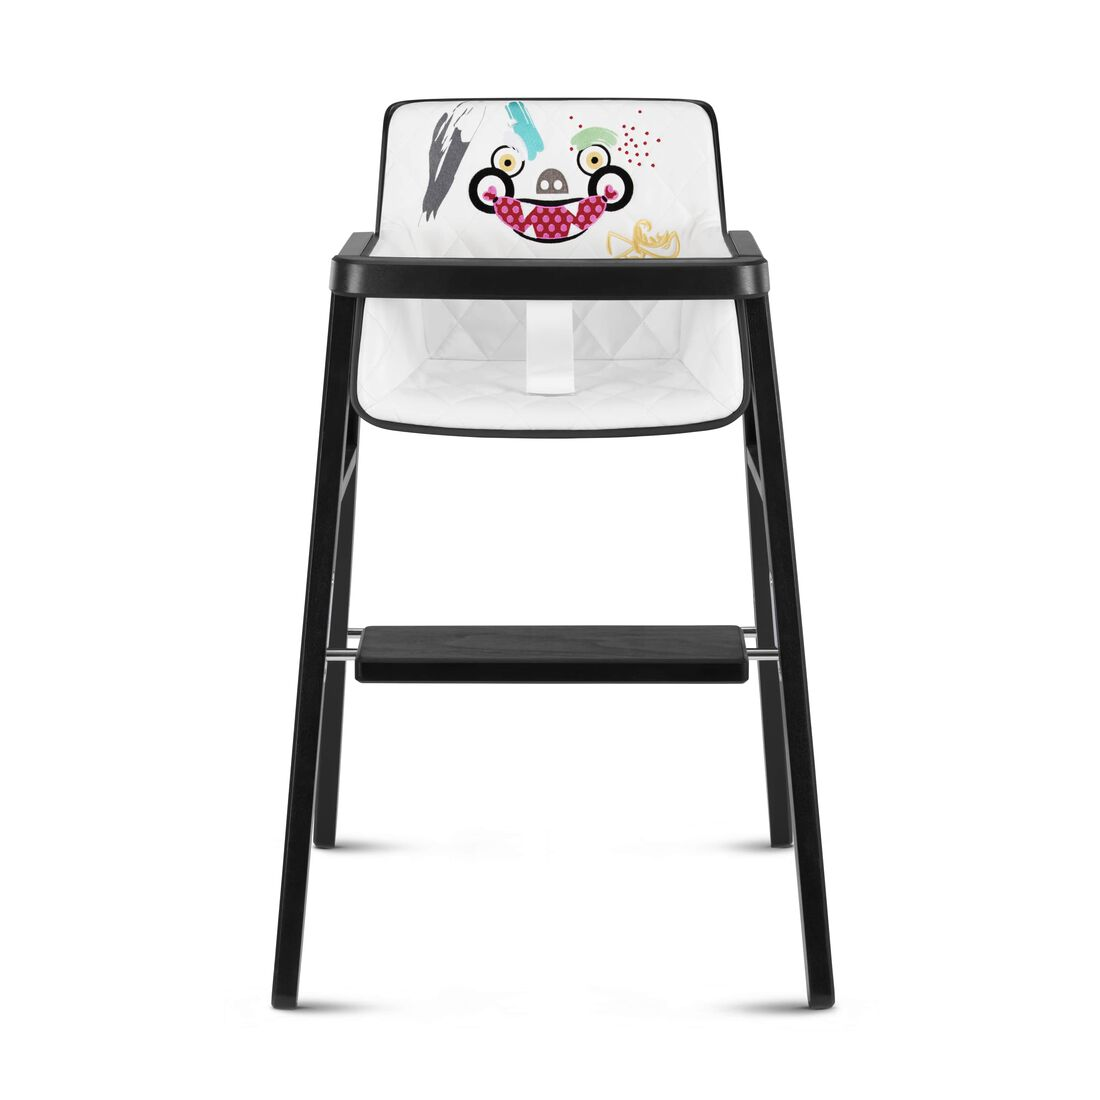 CYBEX by Marcel Wanders - Highchair